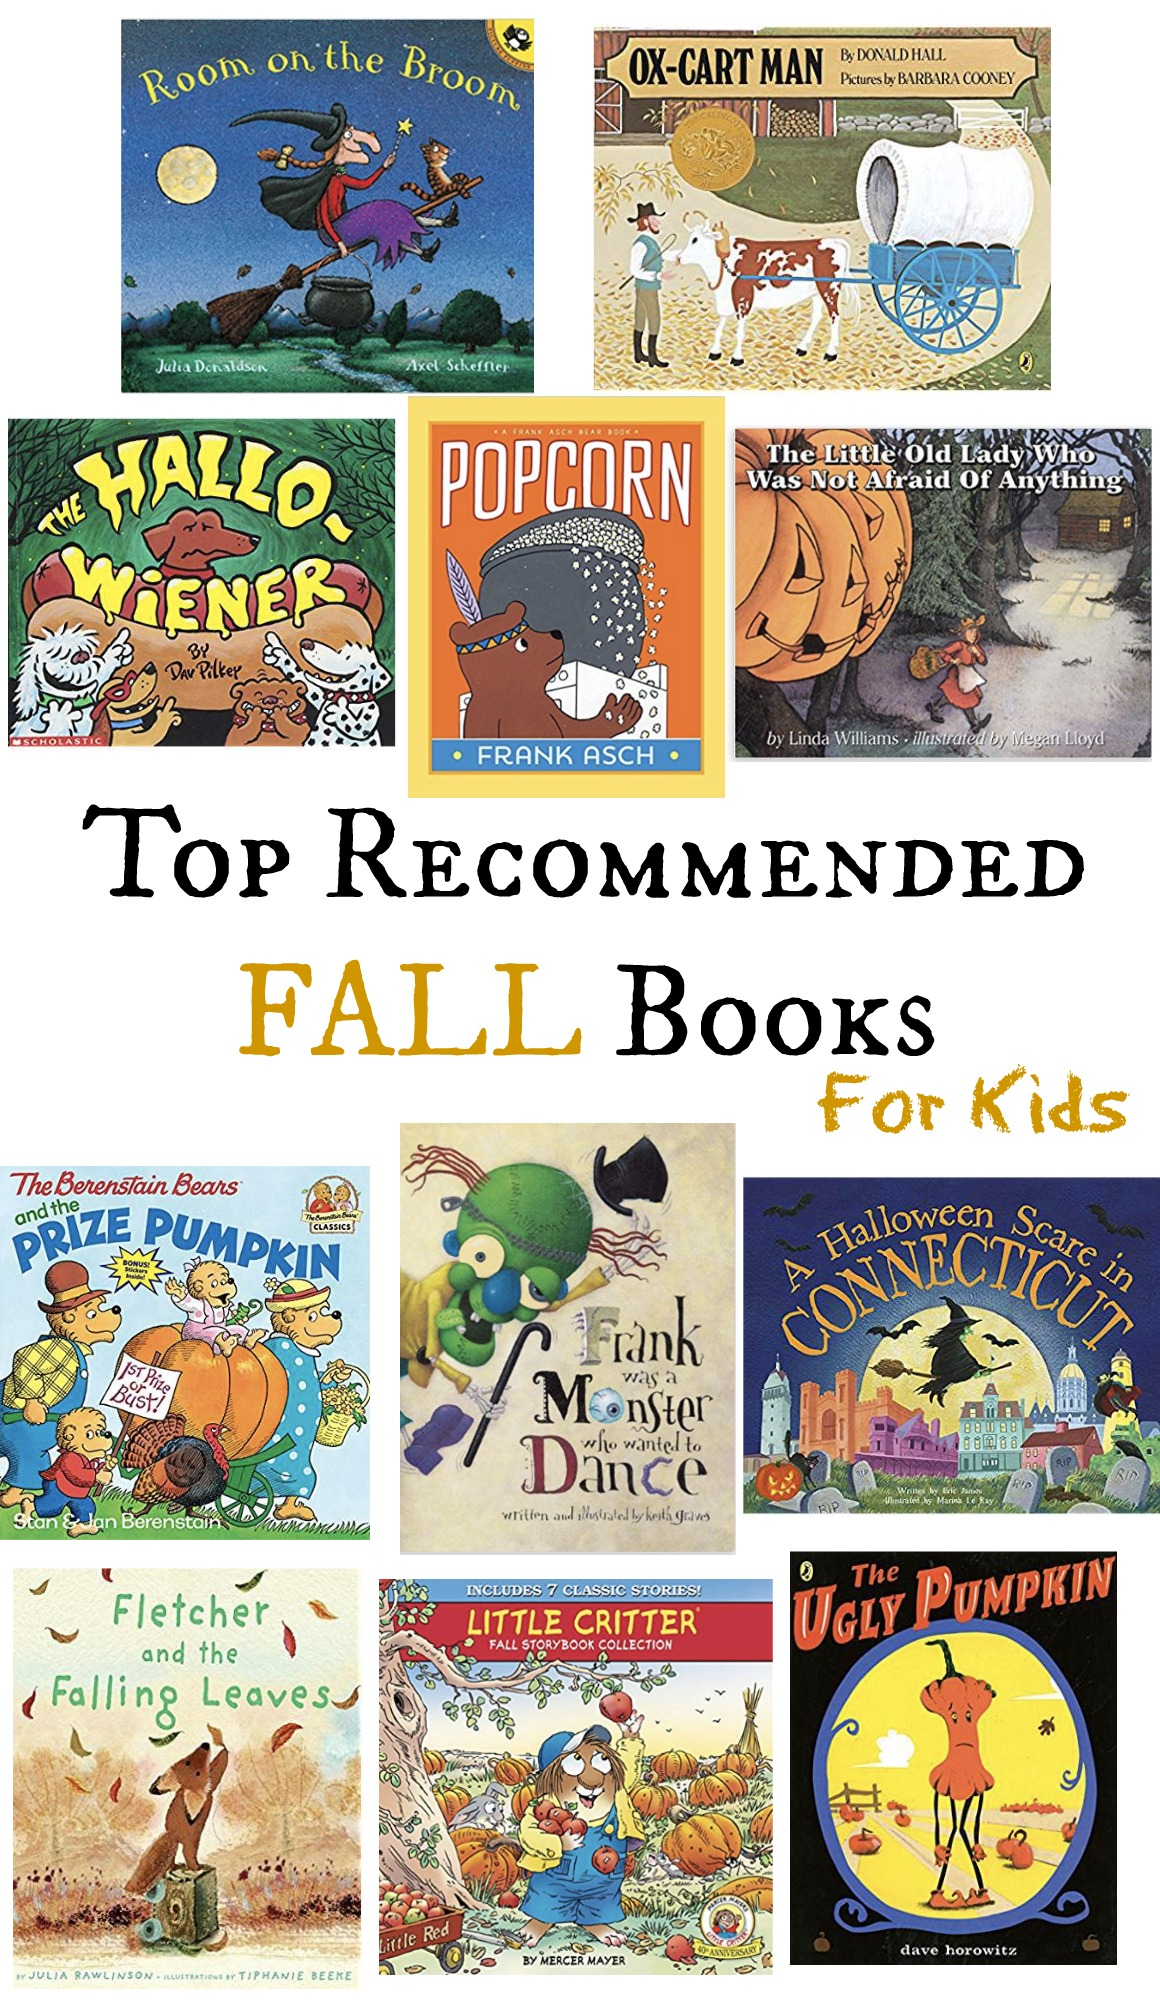 Fall Books for Kids- Top Recommended